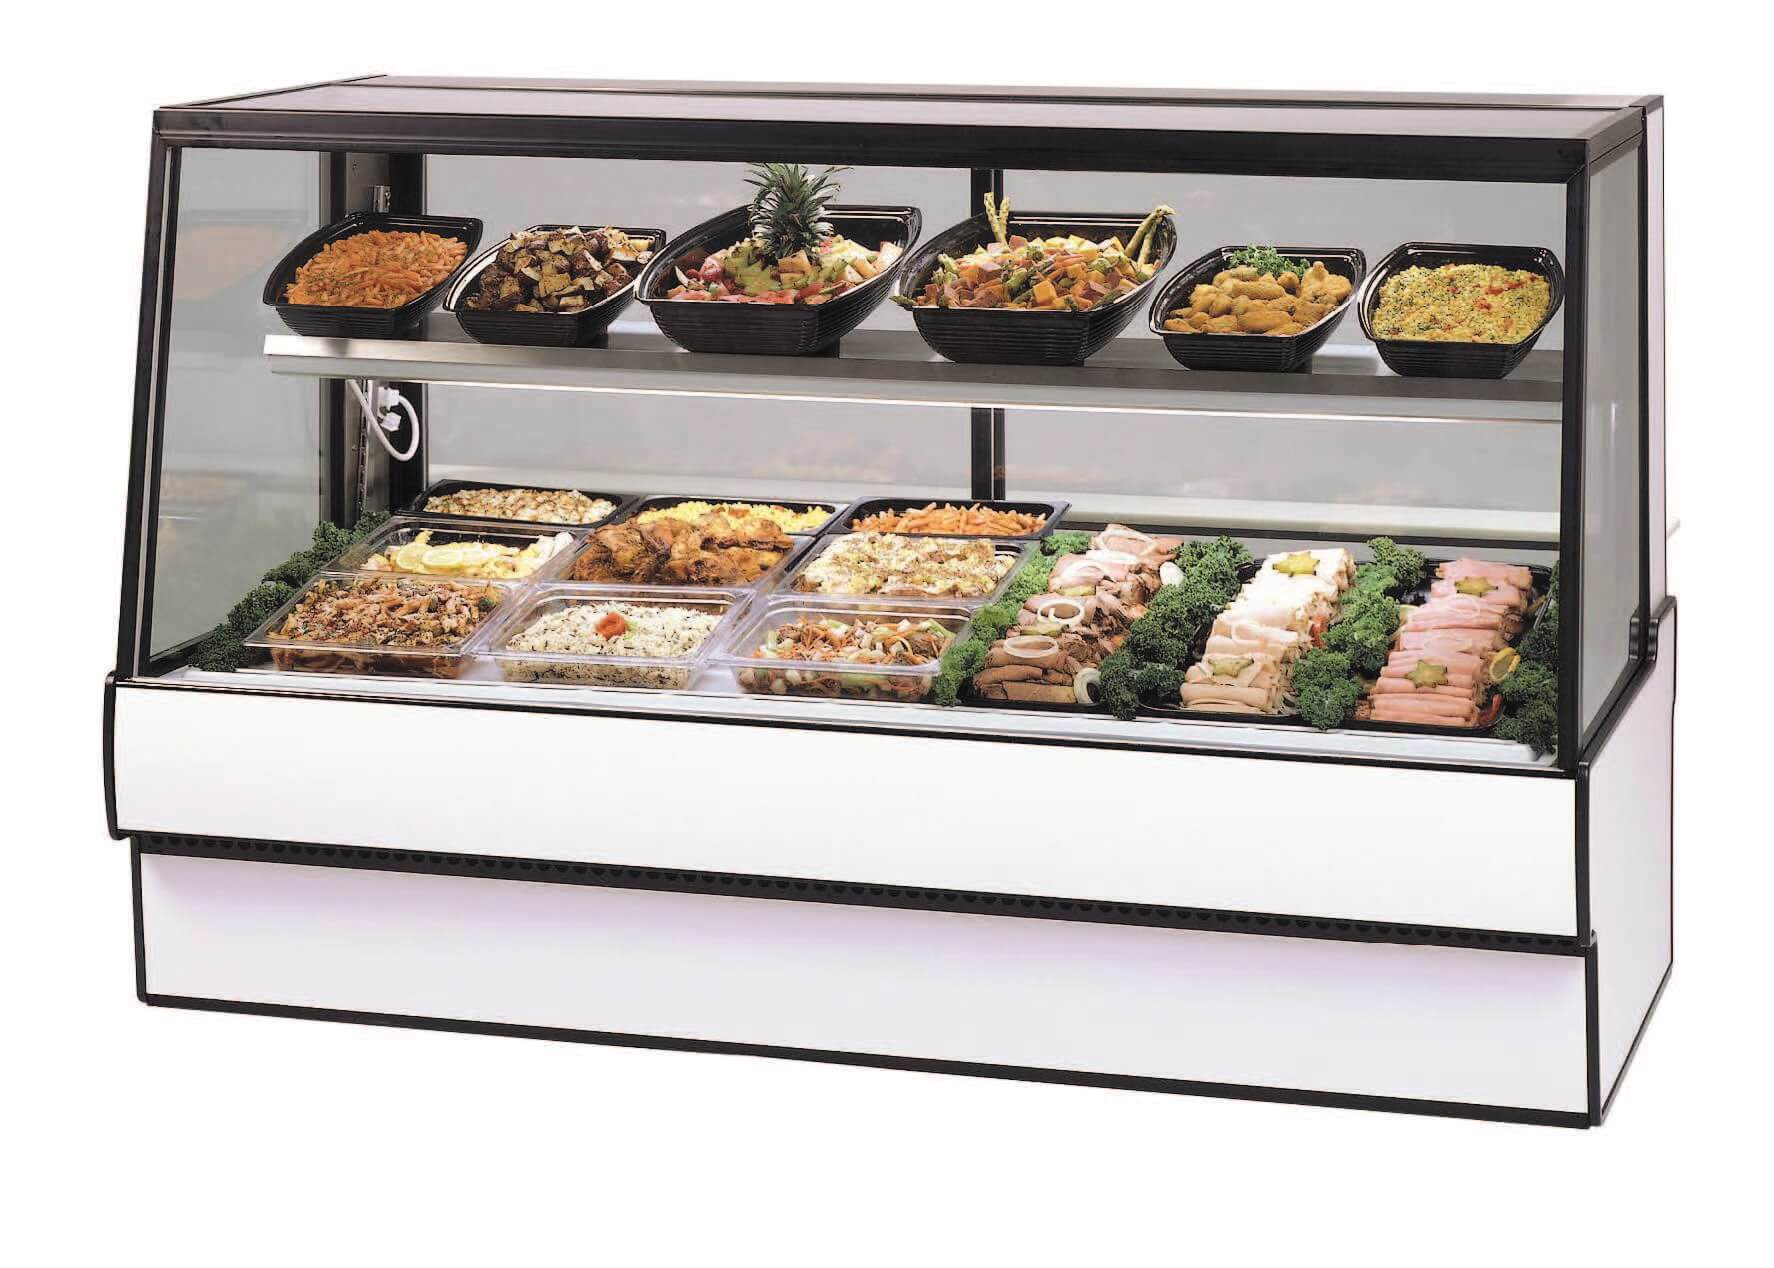 sgr3648cd-high-volume-refrigerated-deli-case1